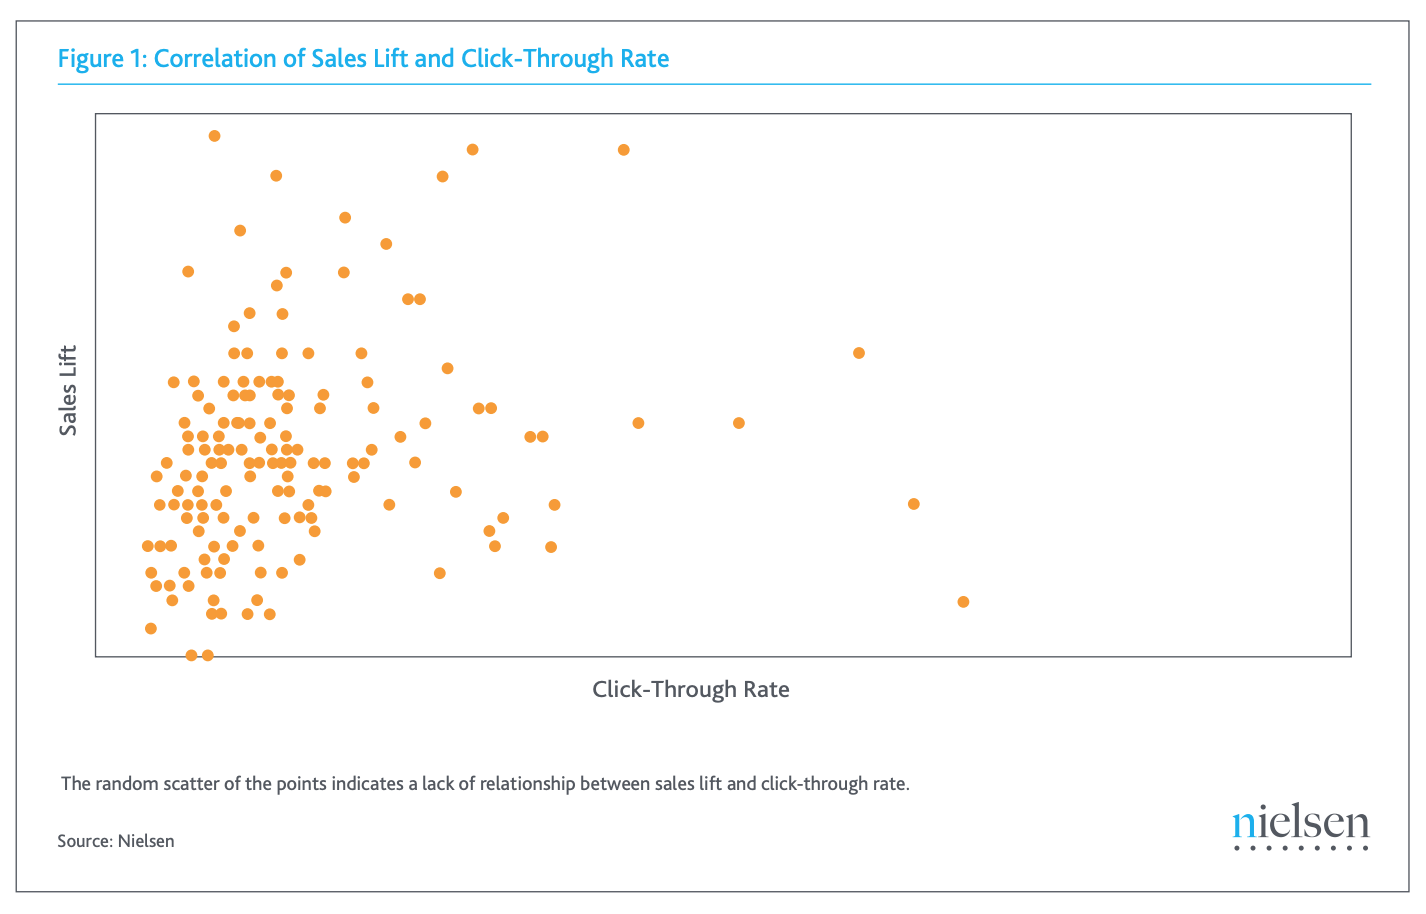 Correlation of Sales Lift and Click-Through Rate